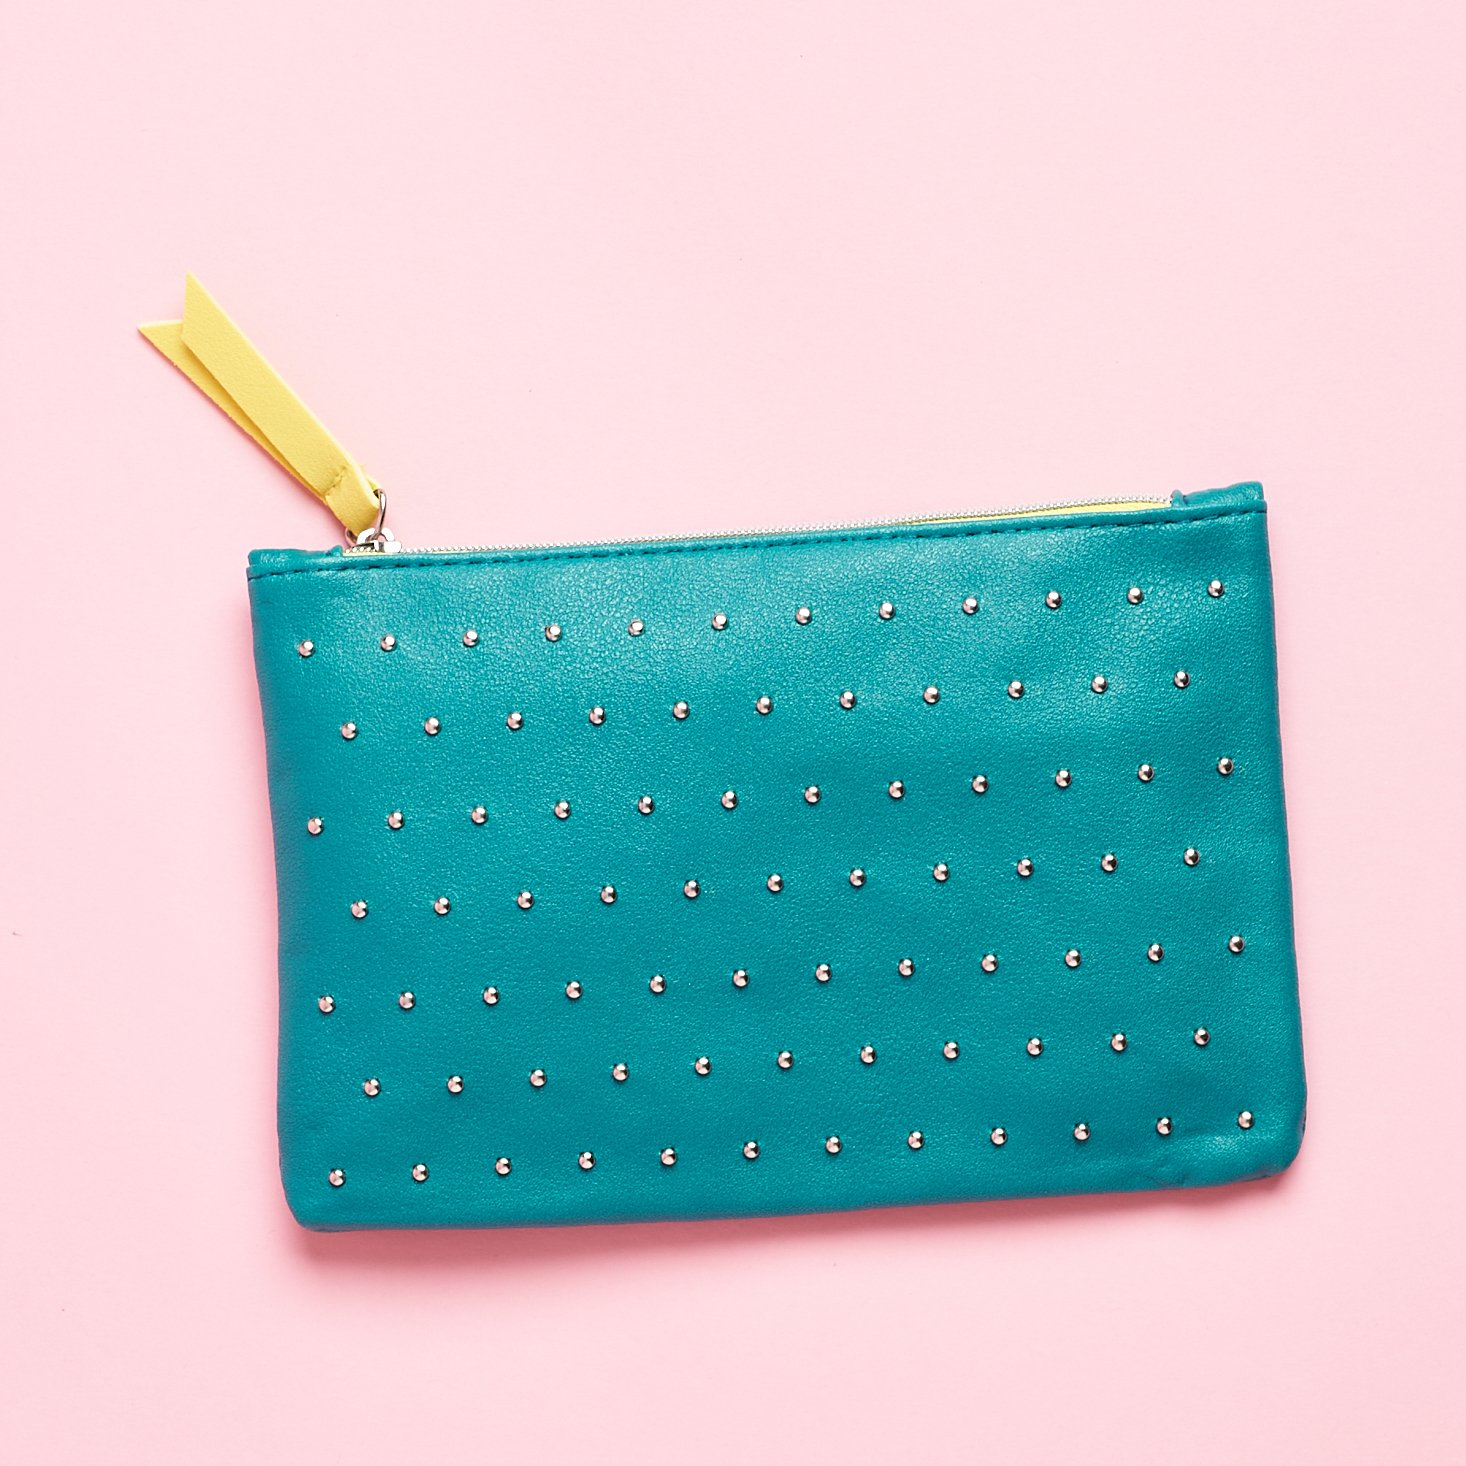 faux leather teal back with studded detail and lime interior